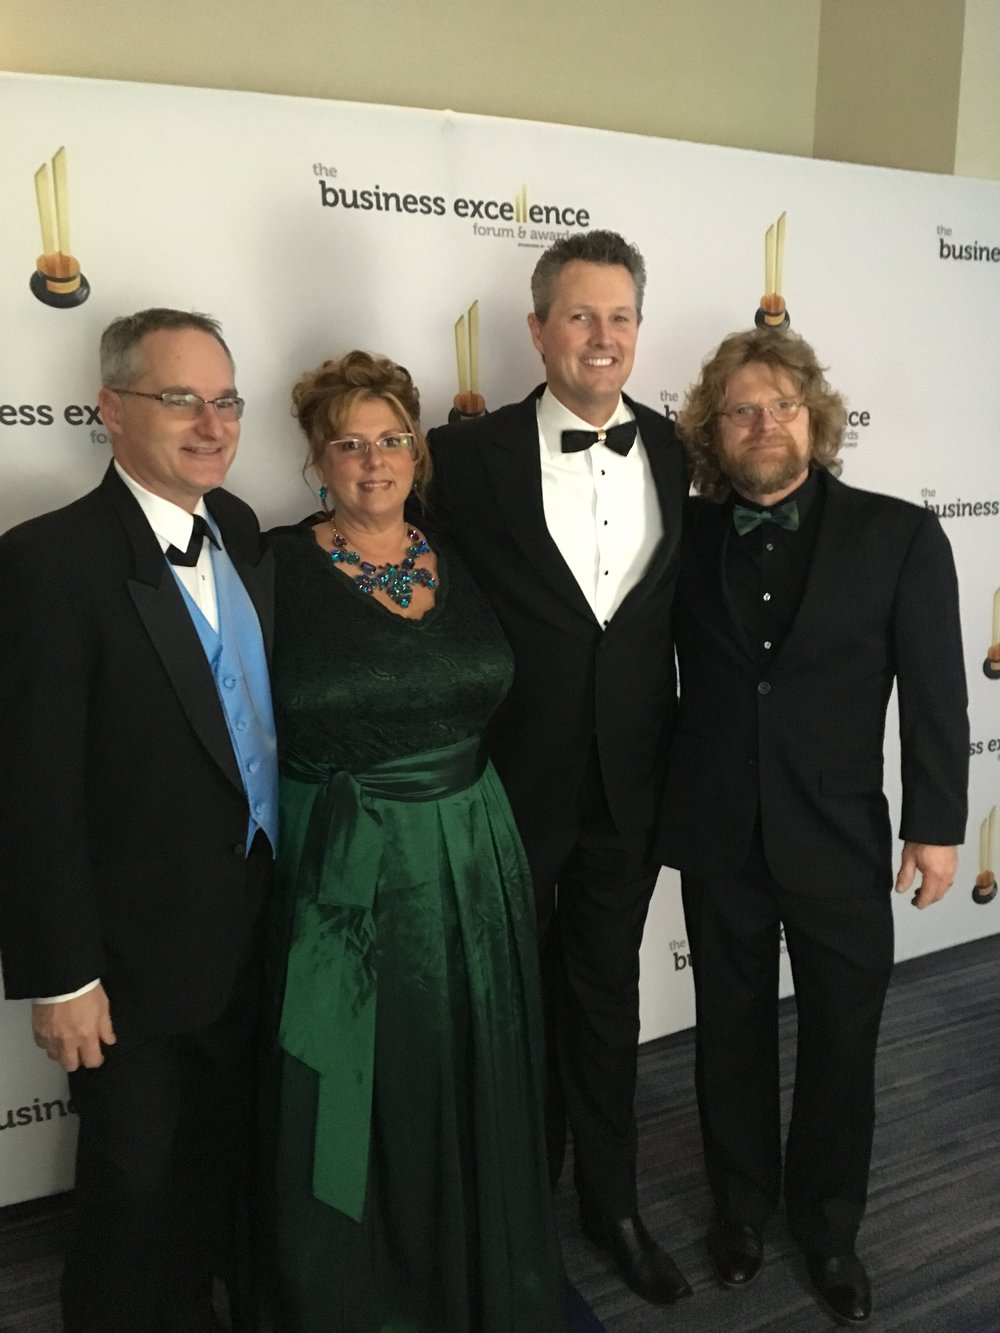 Tim (far right) & Liz (second from left) Koch, proprietors of The Mad Hatter and finalists at the 2017 Business Excellence Forum